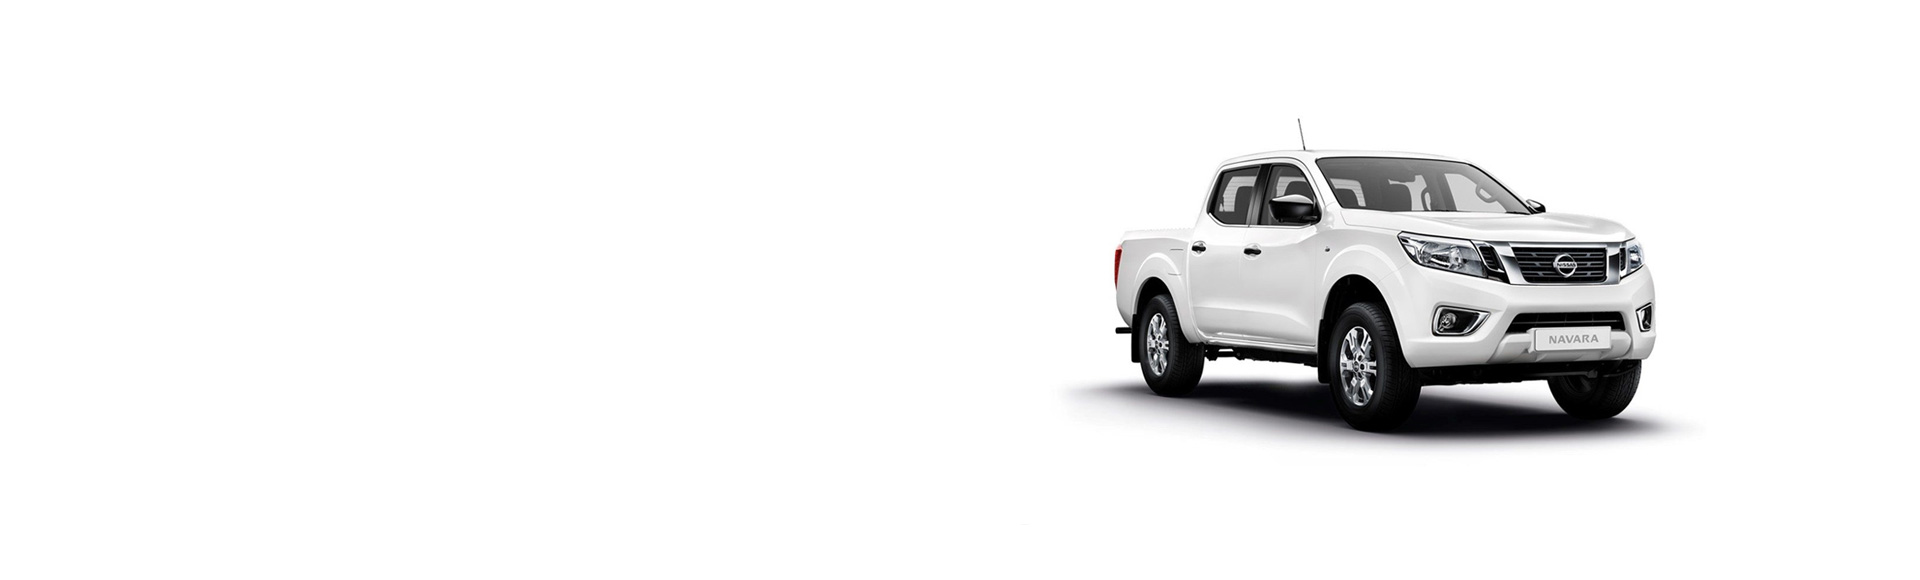 <span style='color:#000;font-size: 45px'>Navara Acenta Double Cab</span>